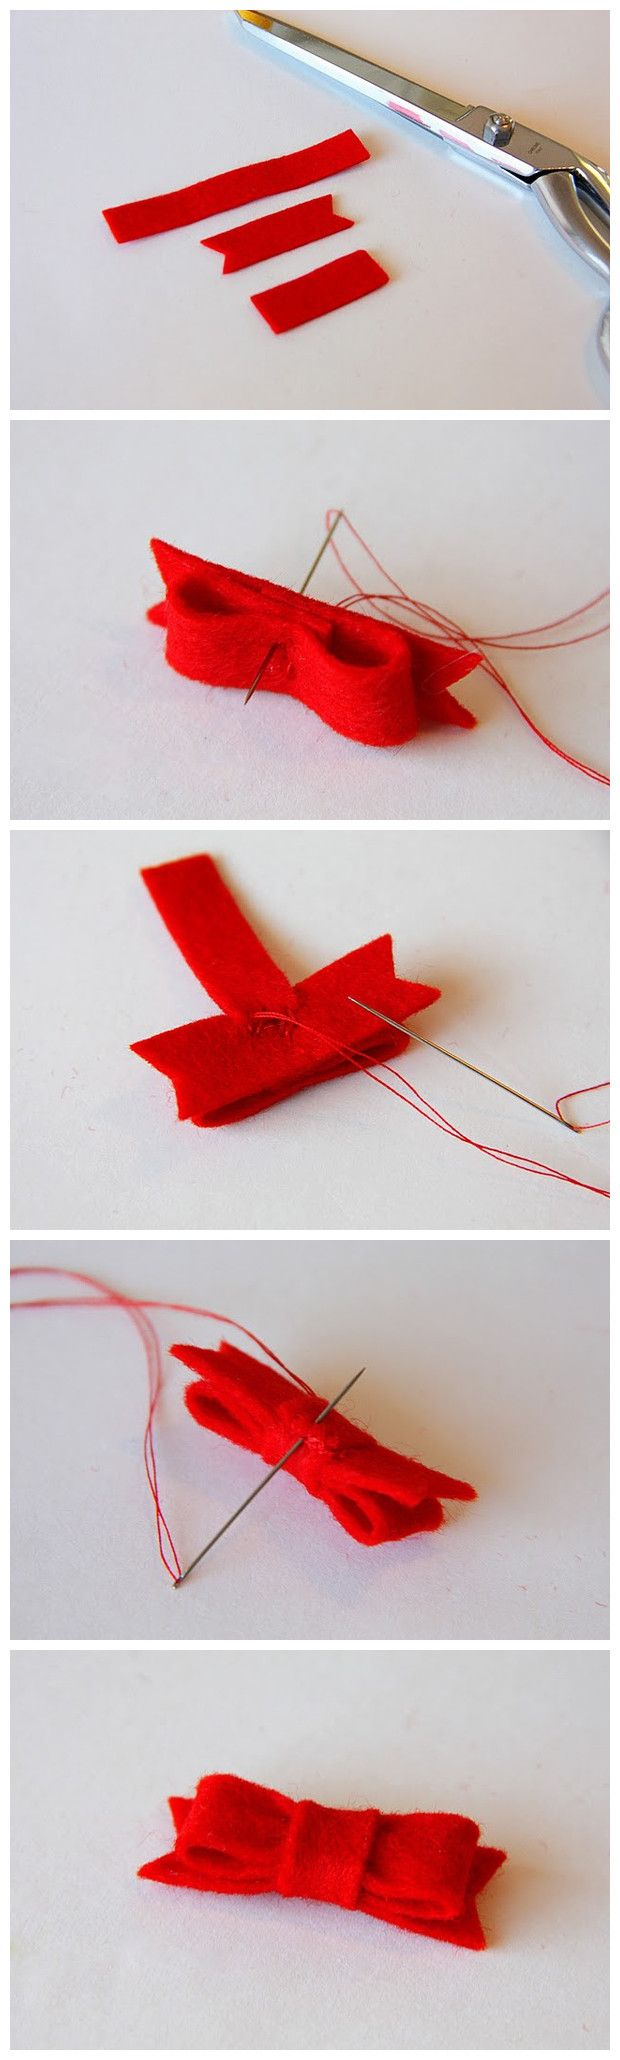 easy how-to make a tiny bow - Facile fare questo bel fiocchetto